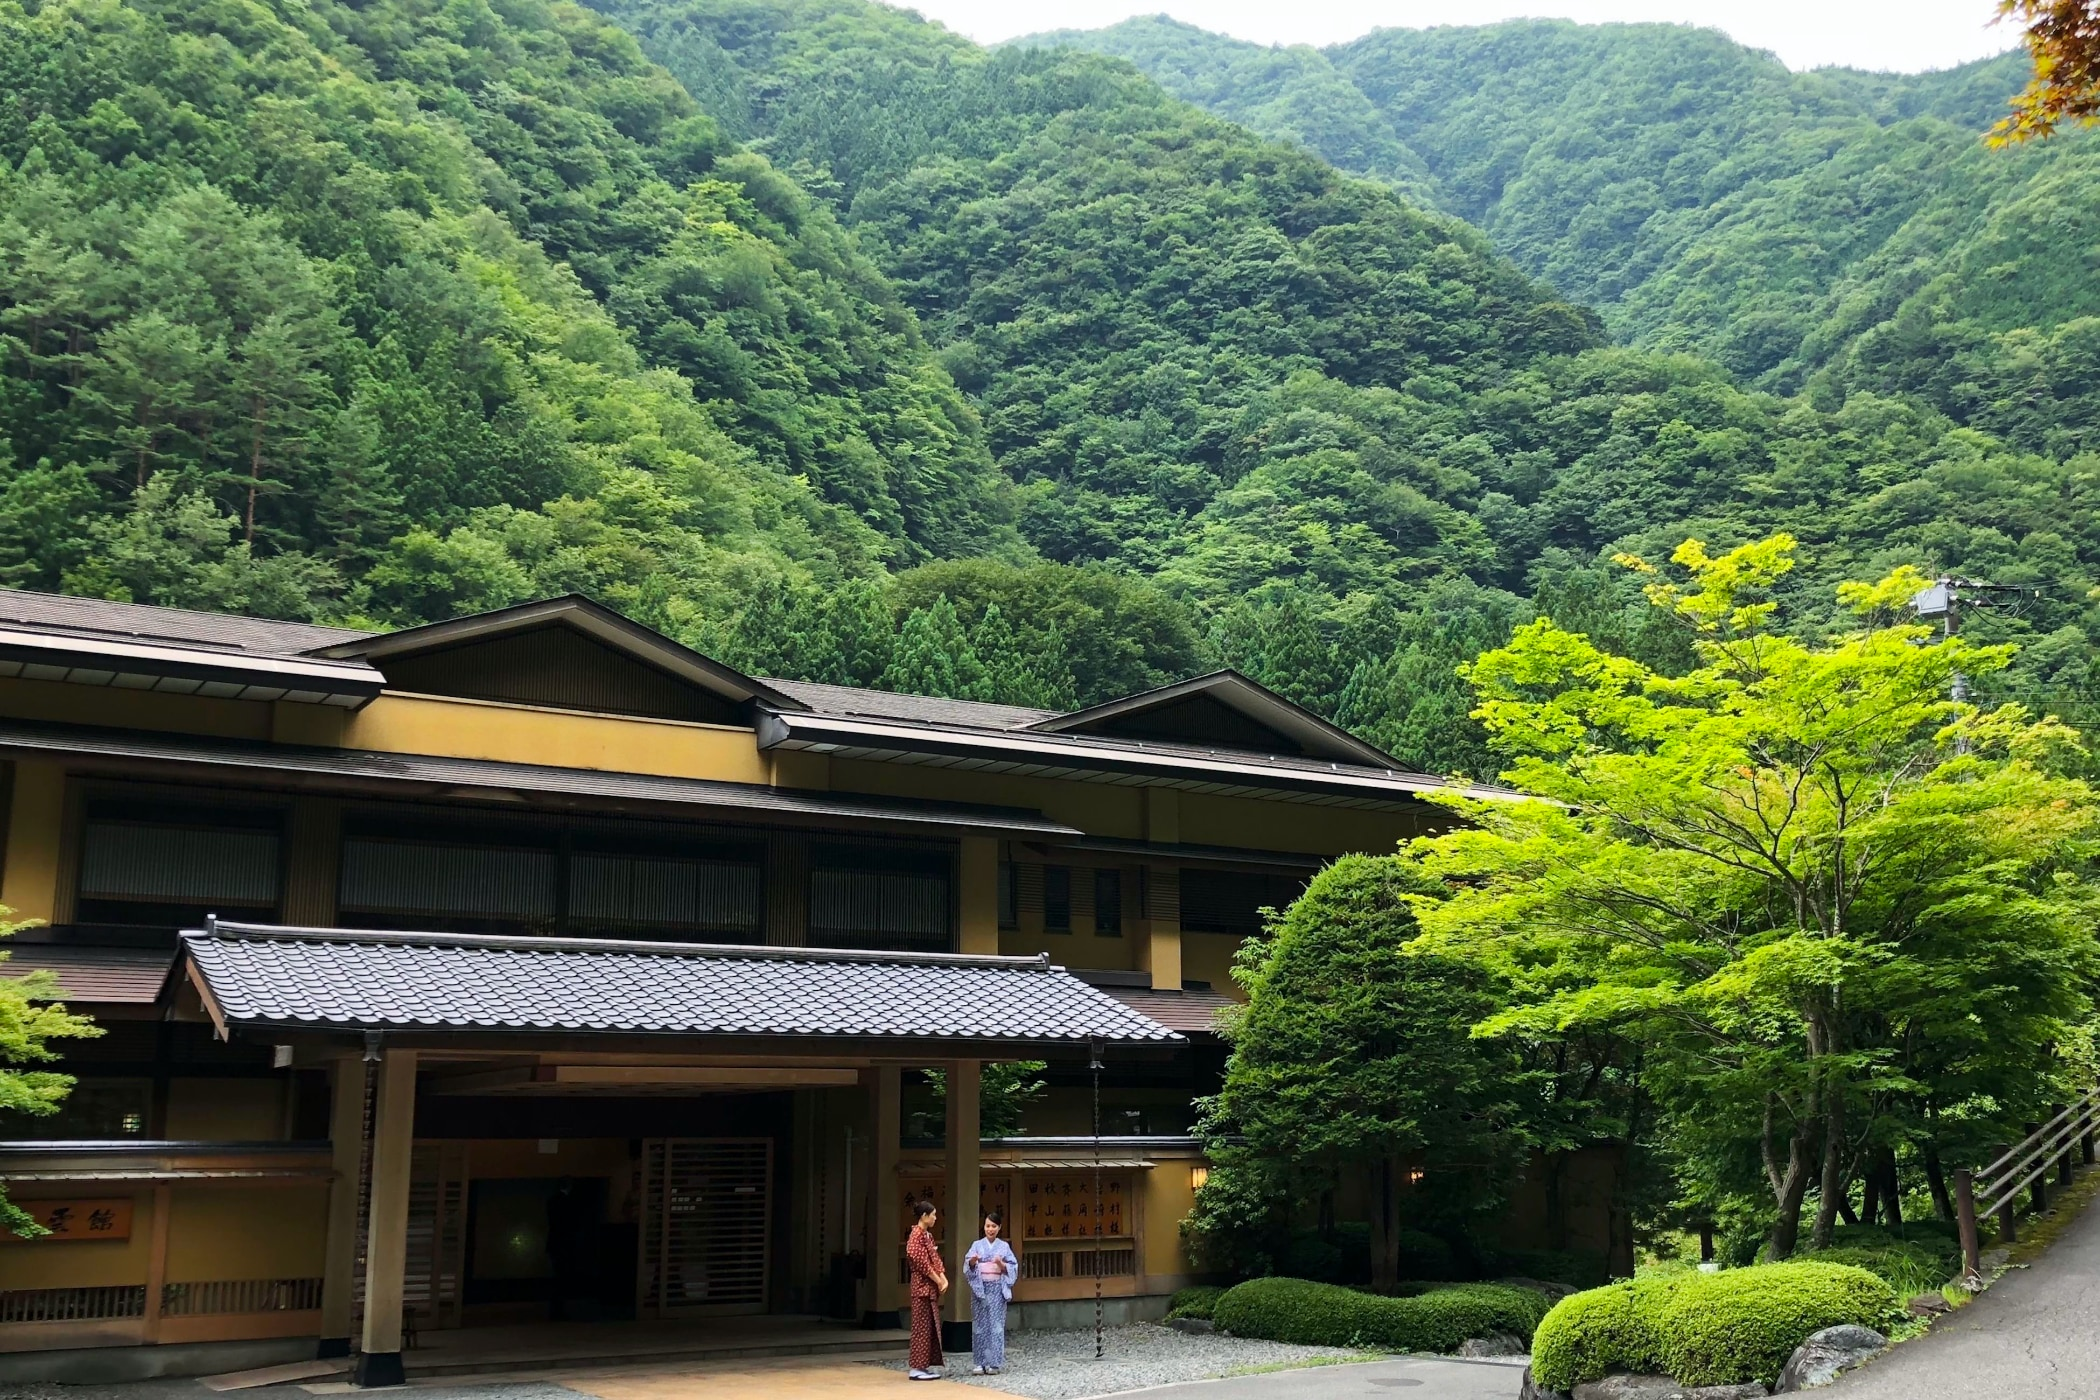 The Nishiyama Onsen Keiunkan, the world's oldest hotel, with mountains behind it and staff in kimono ready to greet guests out front.